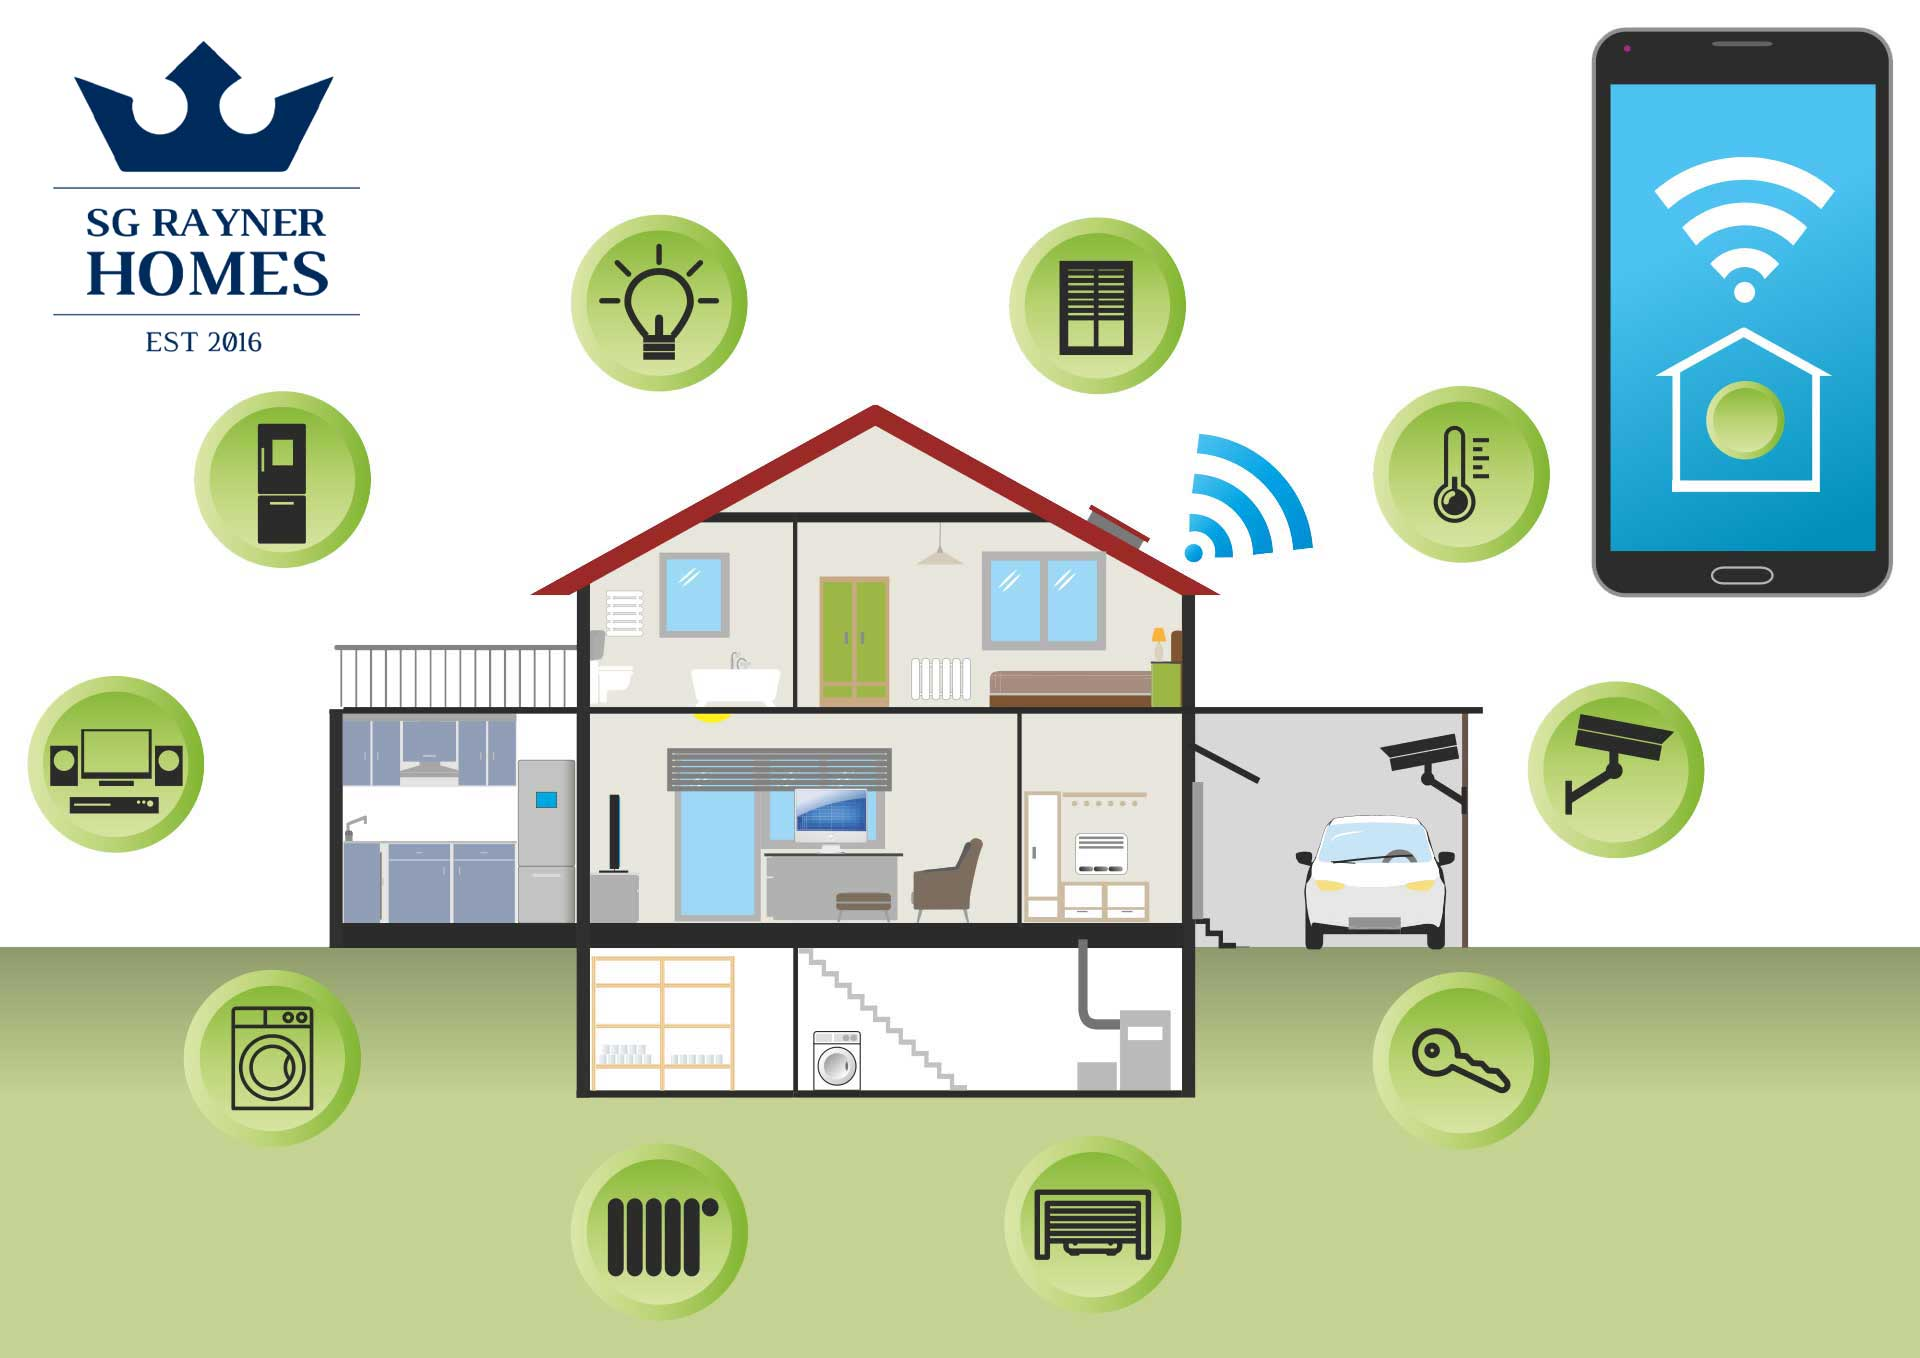 Smart Homes from SG Rayner Homes